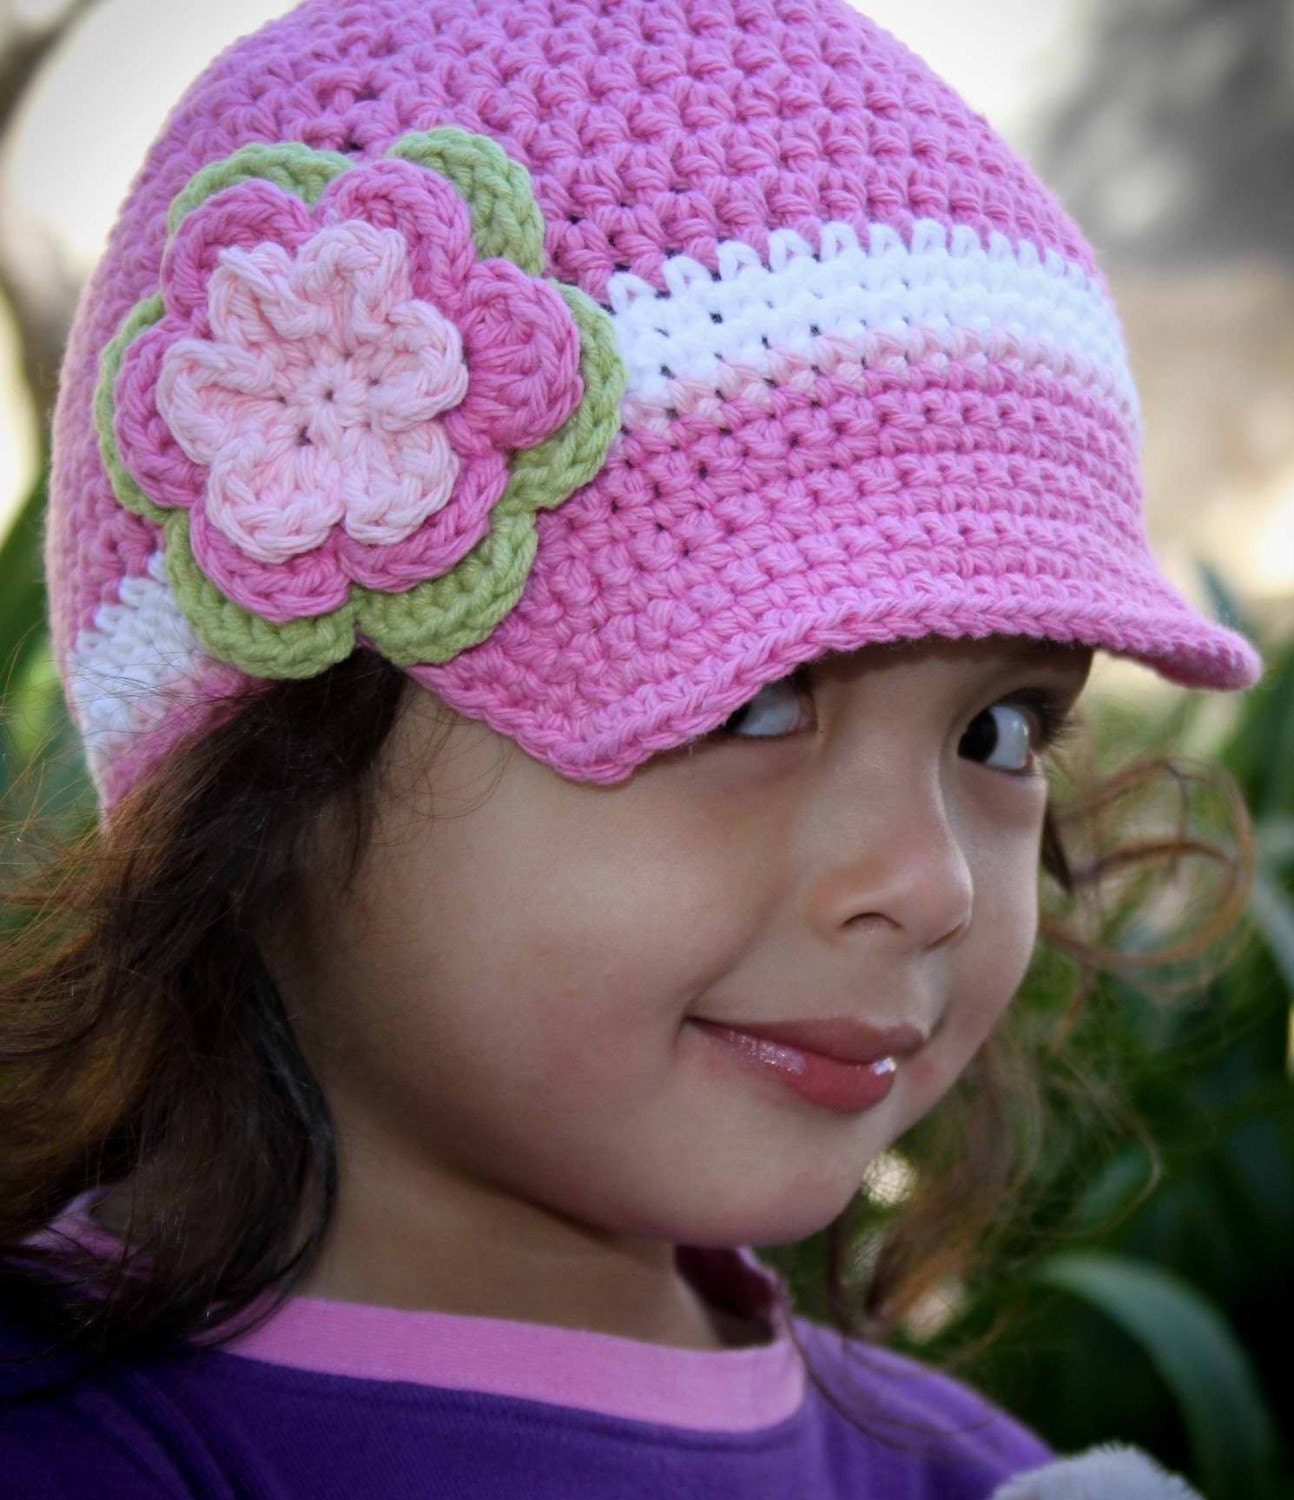 Free Crochet Pattern For Infant Newsboy Hat : Crochet Hat Pattern Easy Peasy Newsboy Unisex by ...